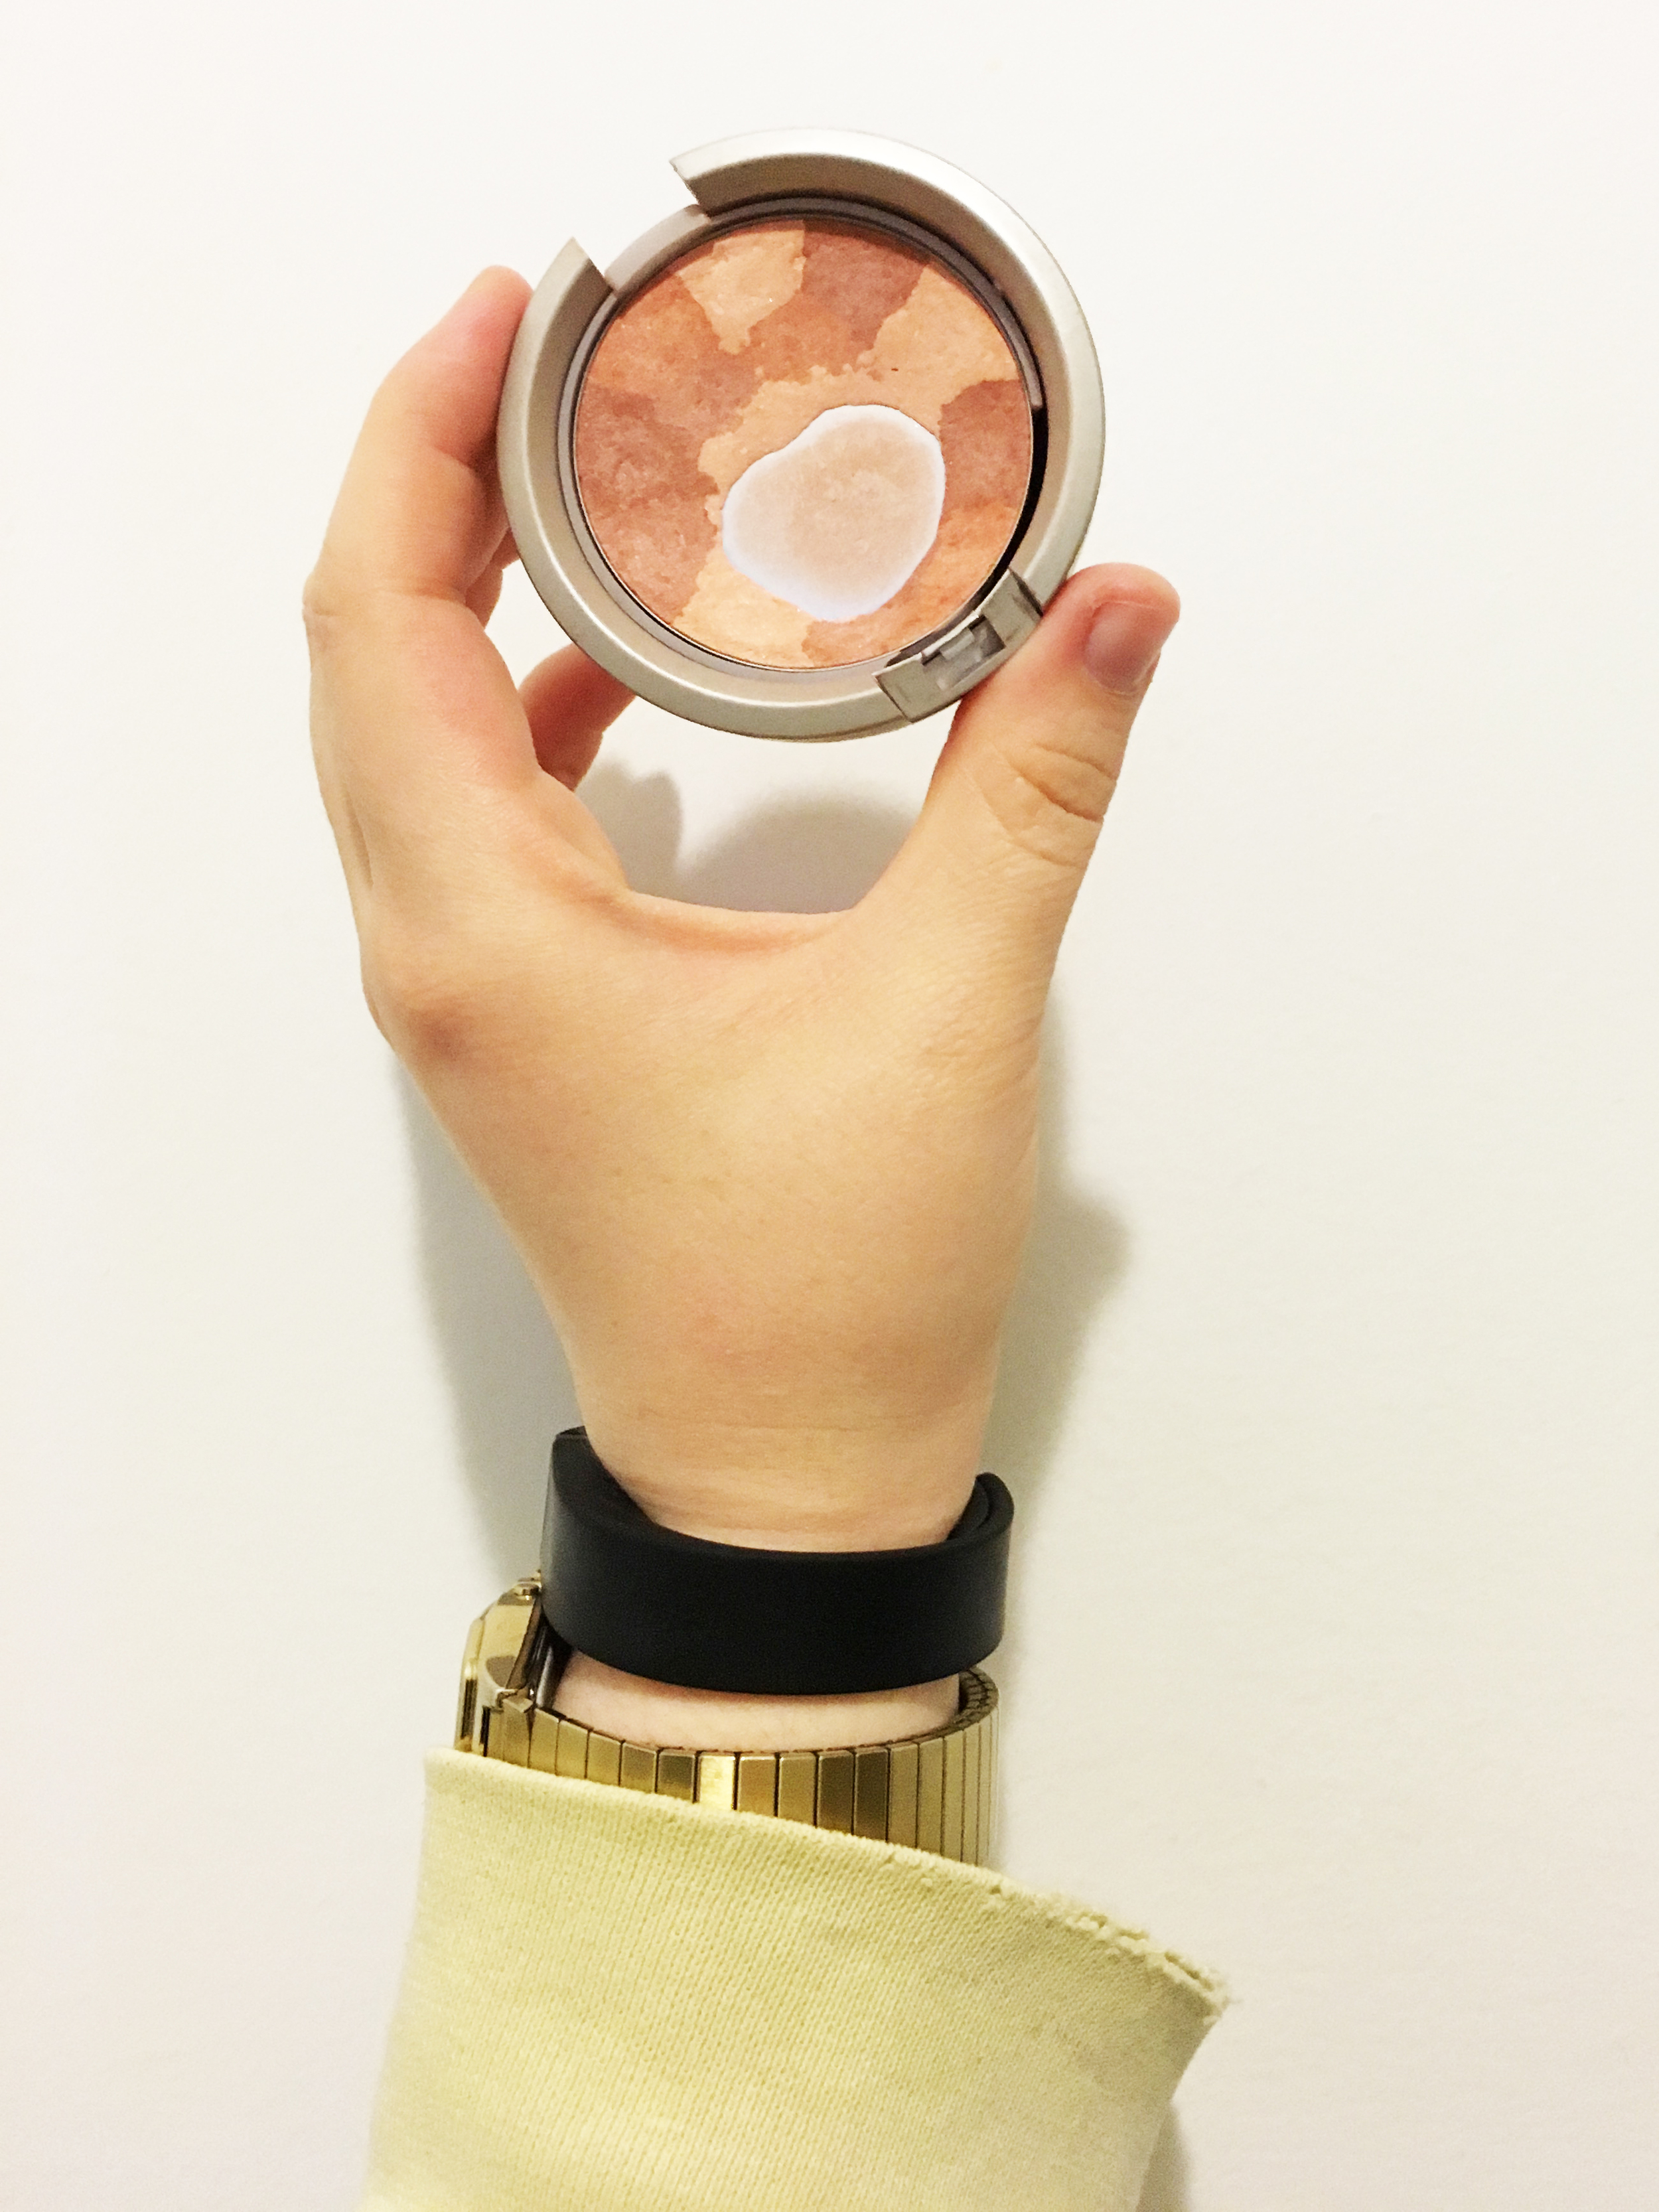 Finishing touches include my favorite blush - this one from Physician's Formula which is down to the pan, gasp!